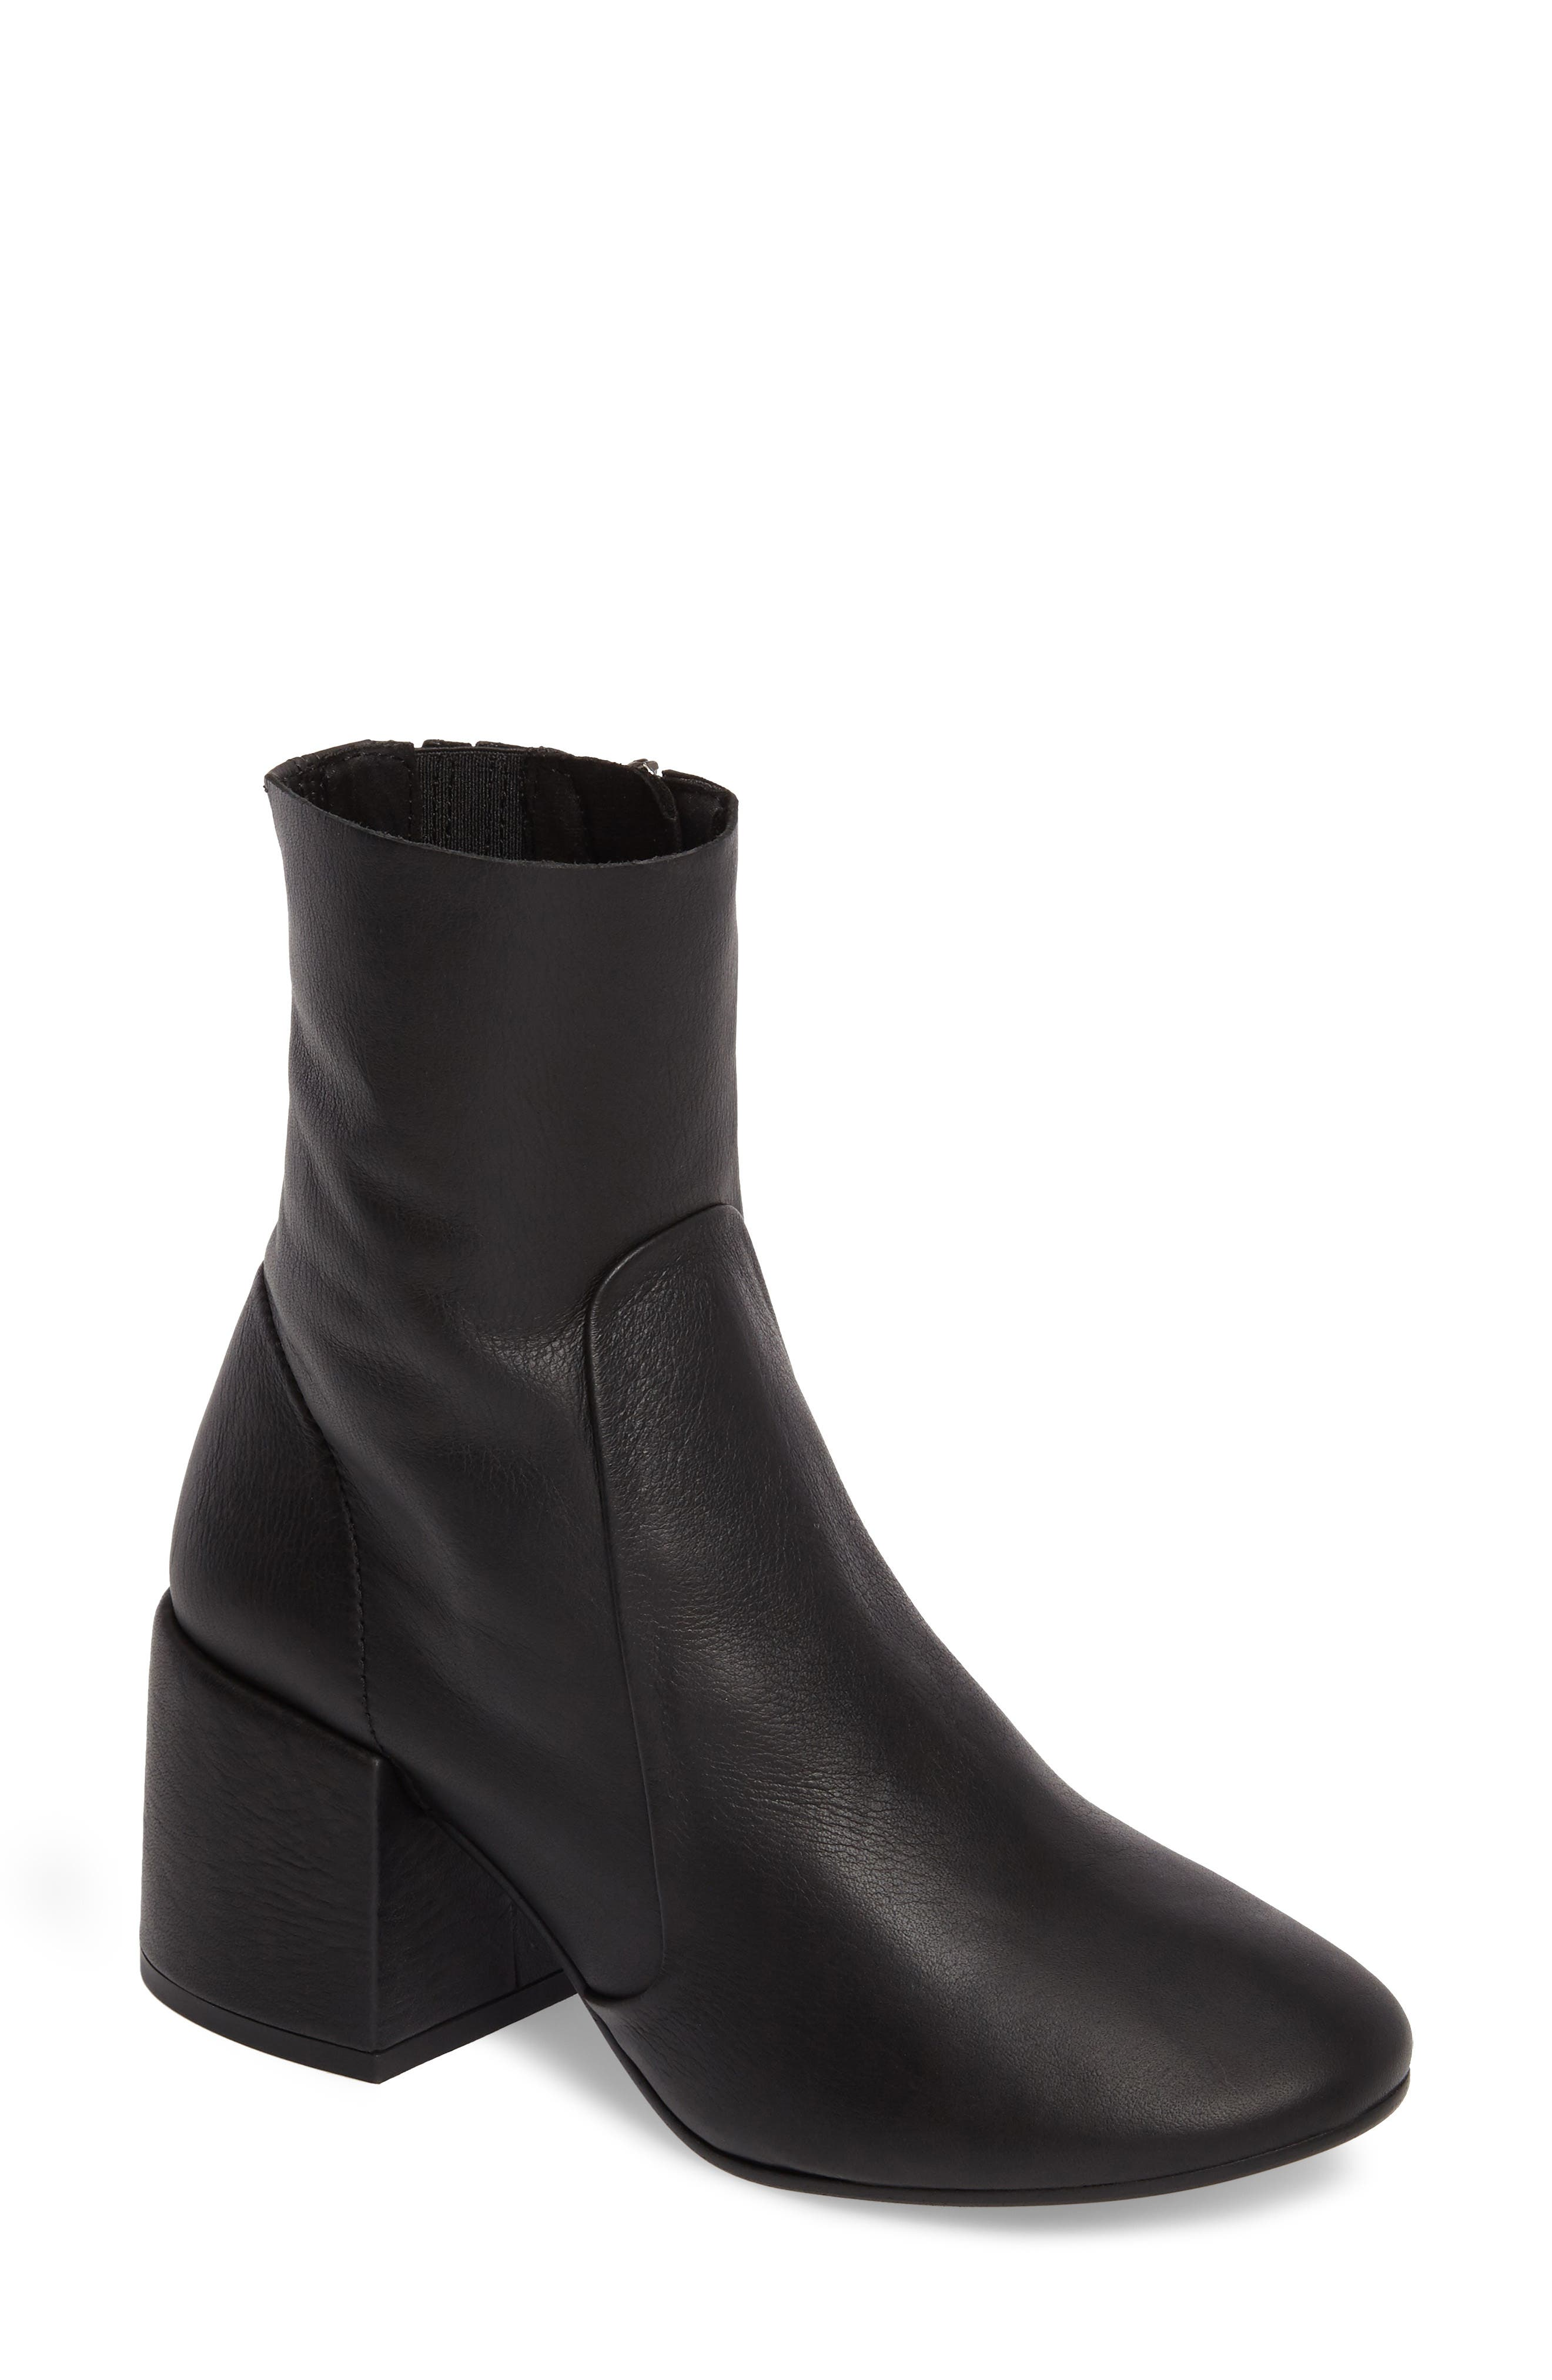 Ashcroft Bootie,                         Main,                         color, Black